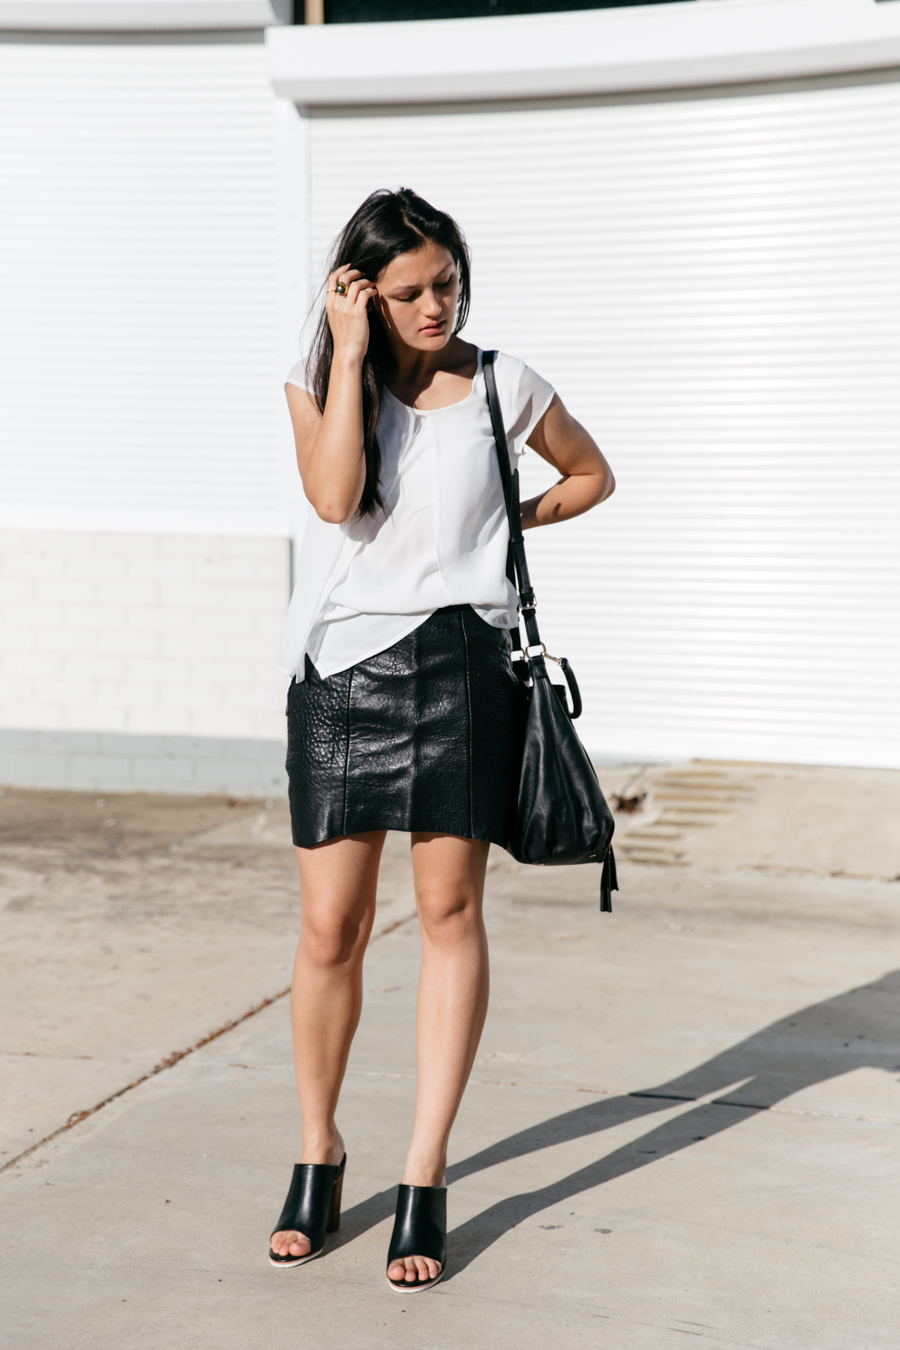 Minimalist fashion blogger outfit.